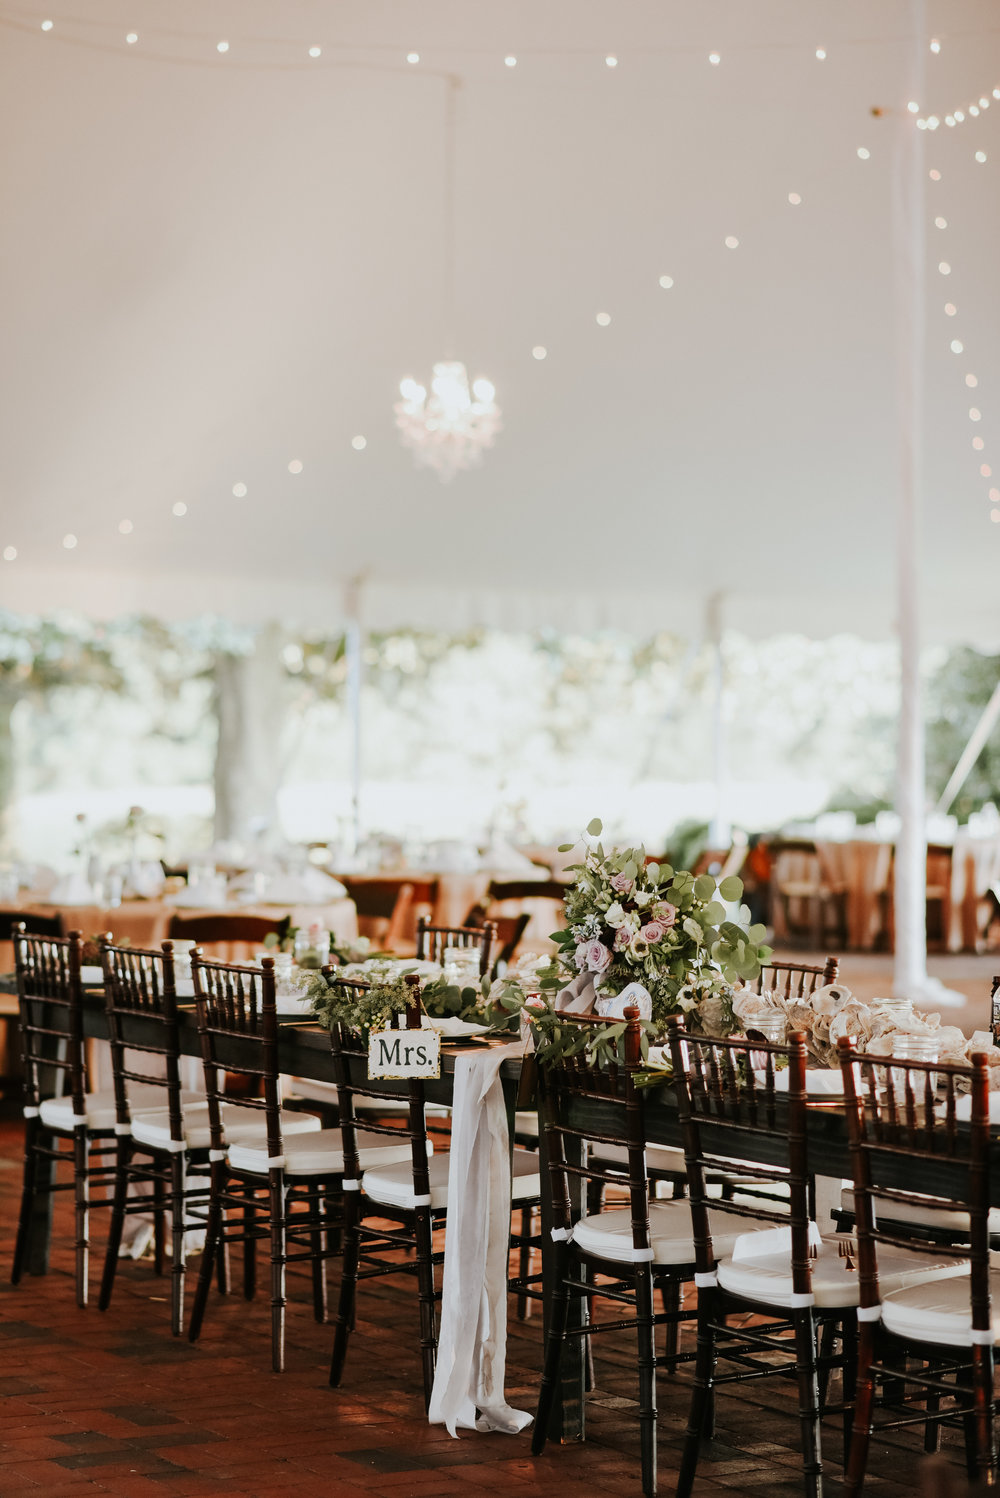 Rustic Oyster Themed Eastern Shore Maryland Outdoor Wedding by East Made Event Company Wedding Planner and Bekah Kay Creative987.jpg